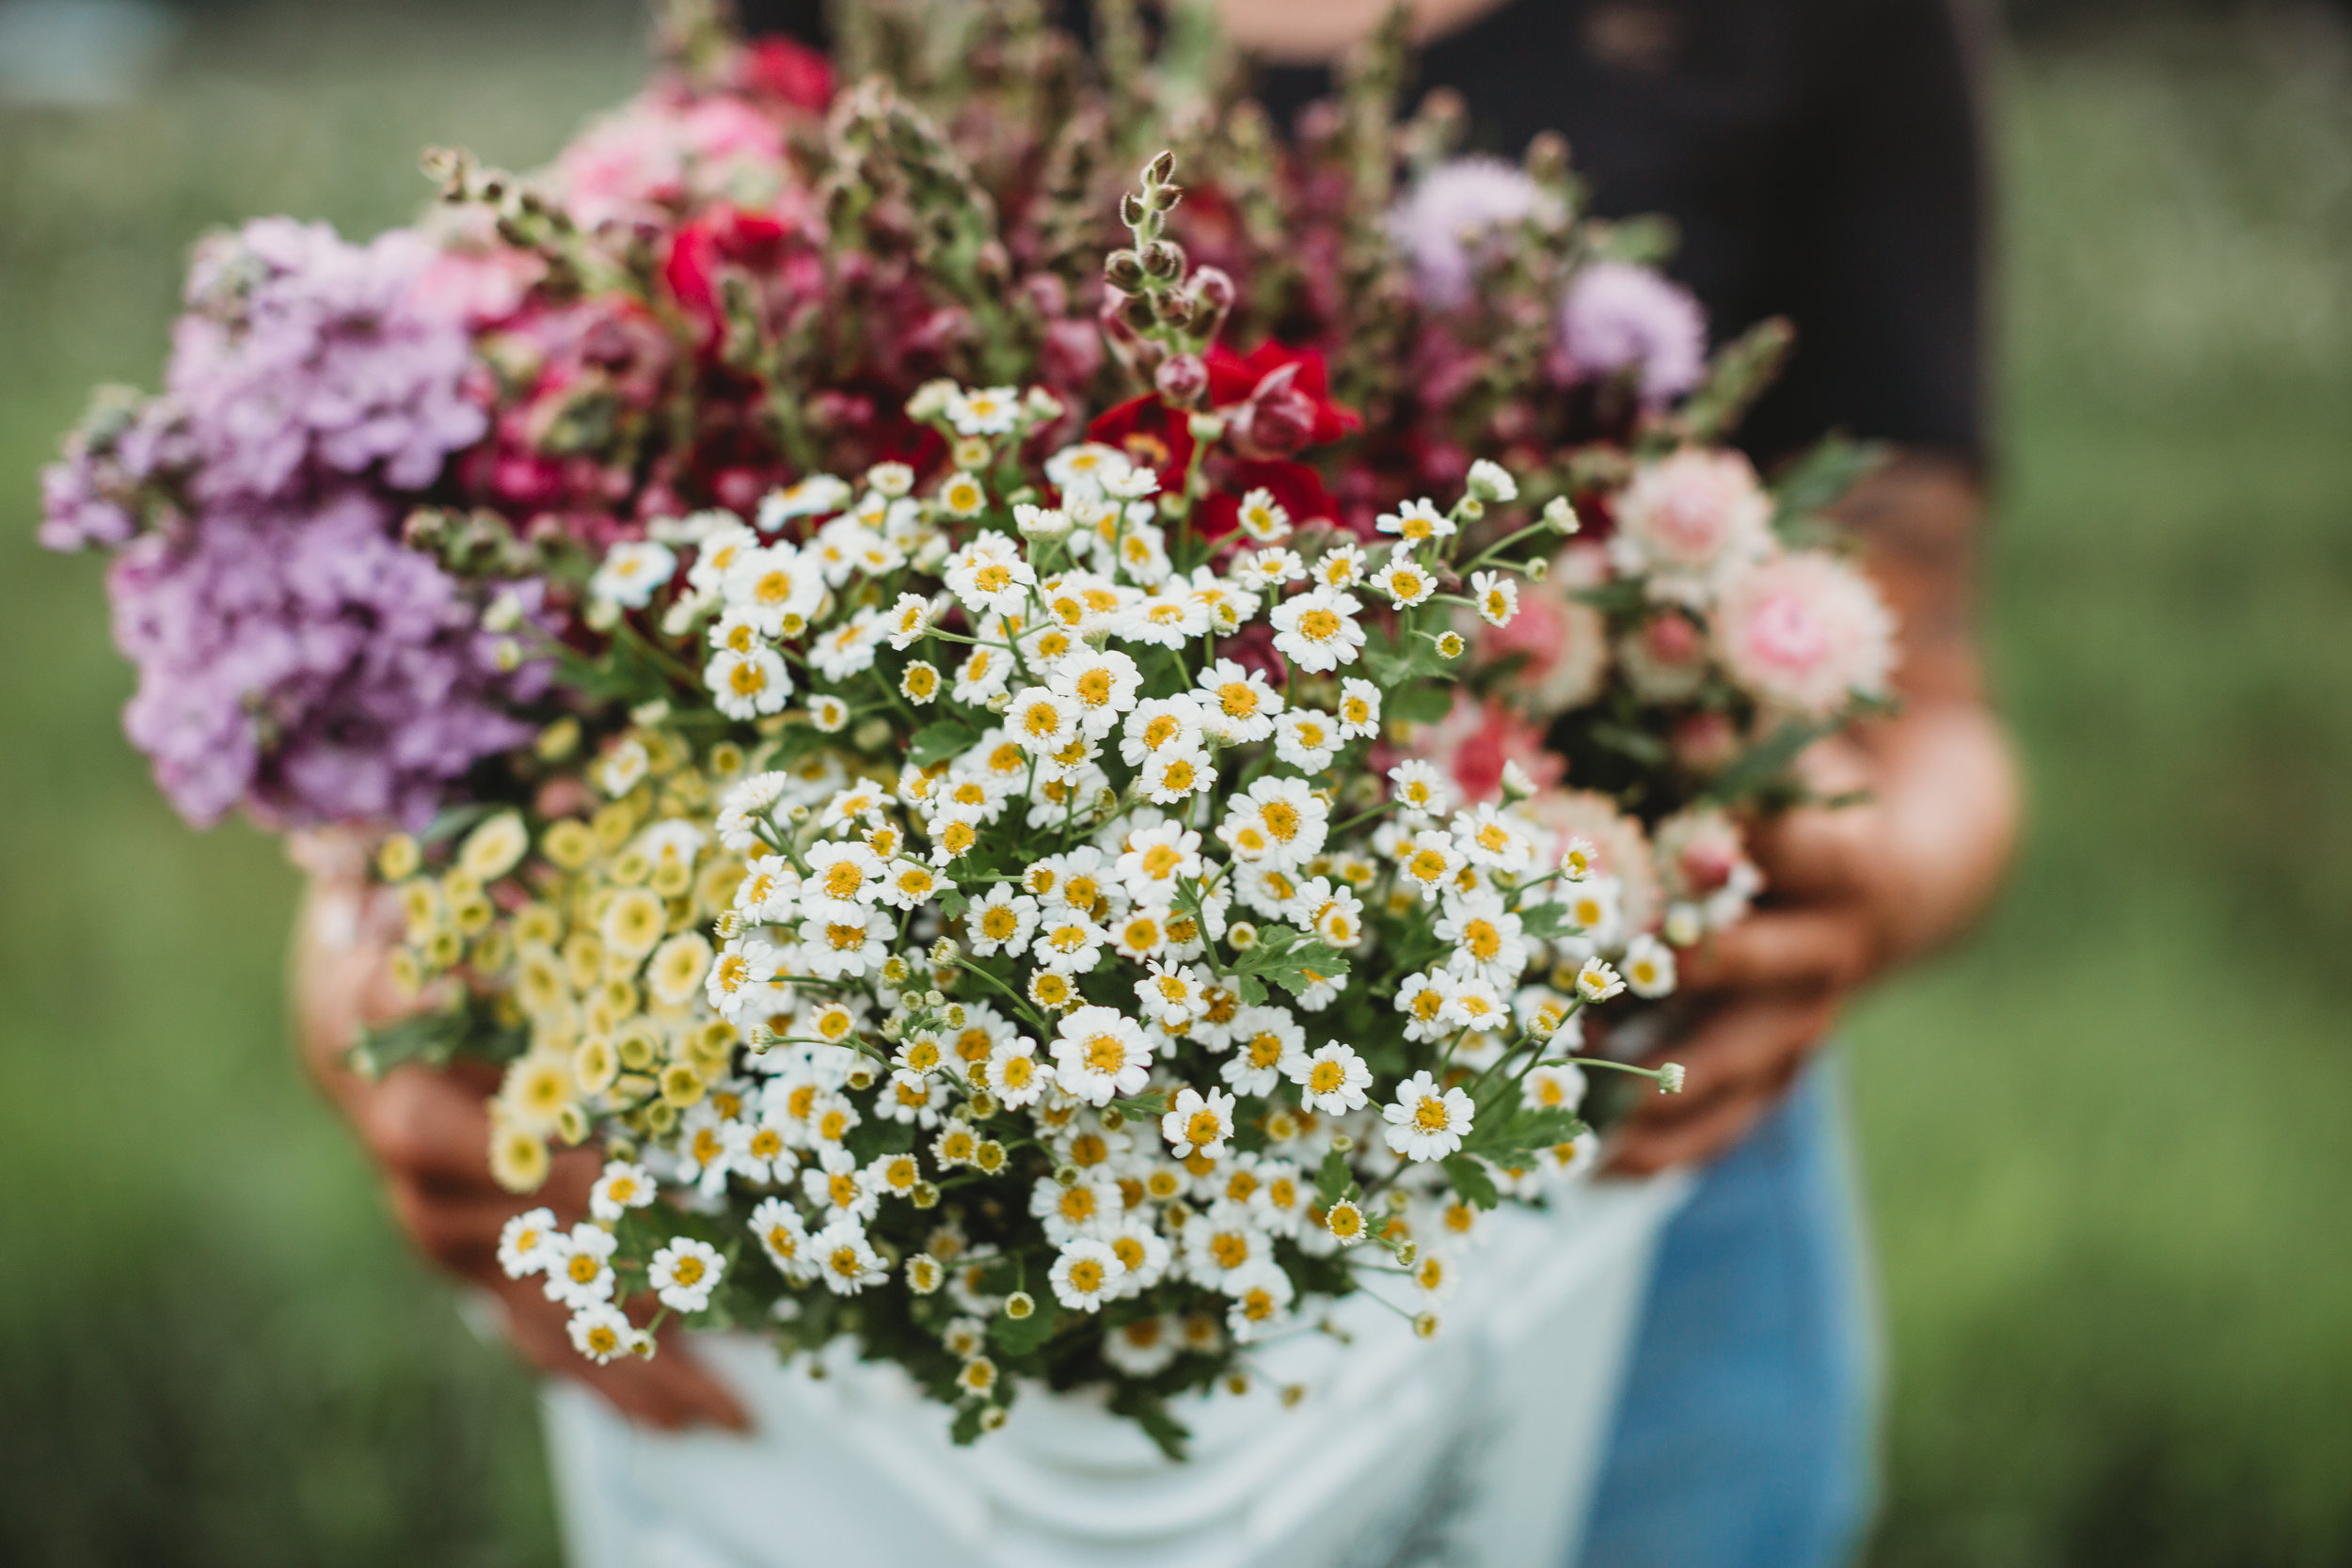 Gorgeous flowers from Field Edge Flowers in Concord, Massachusetts. Documenting this flower farmer's first year in business. Small business branding photography by Joy LeDuc.